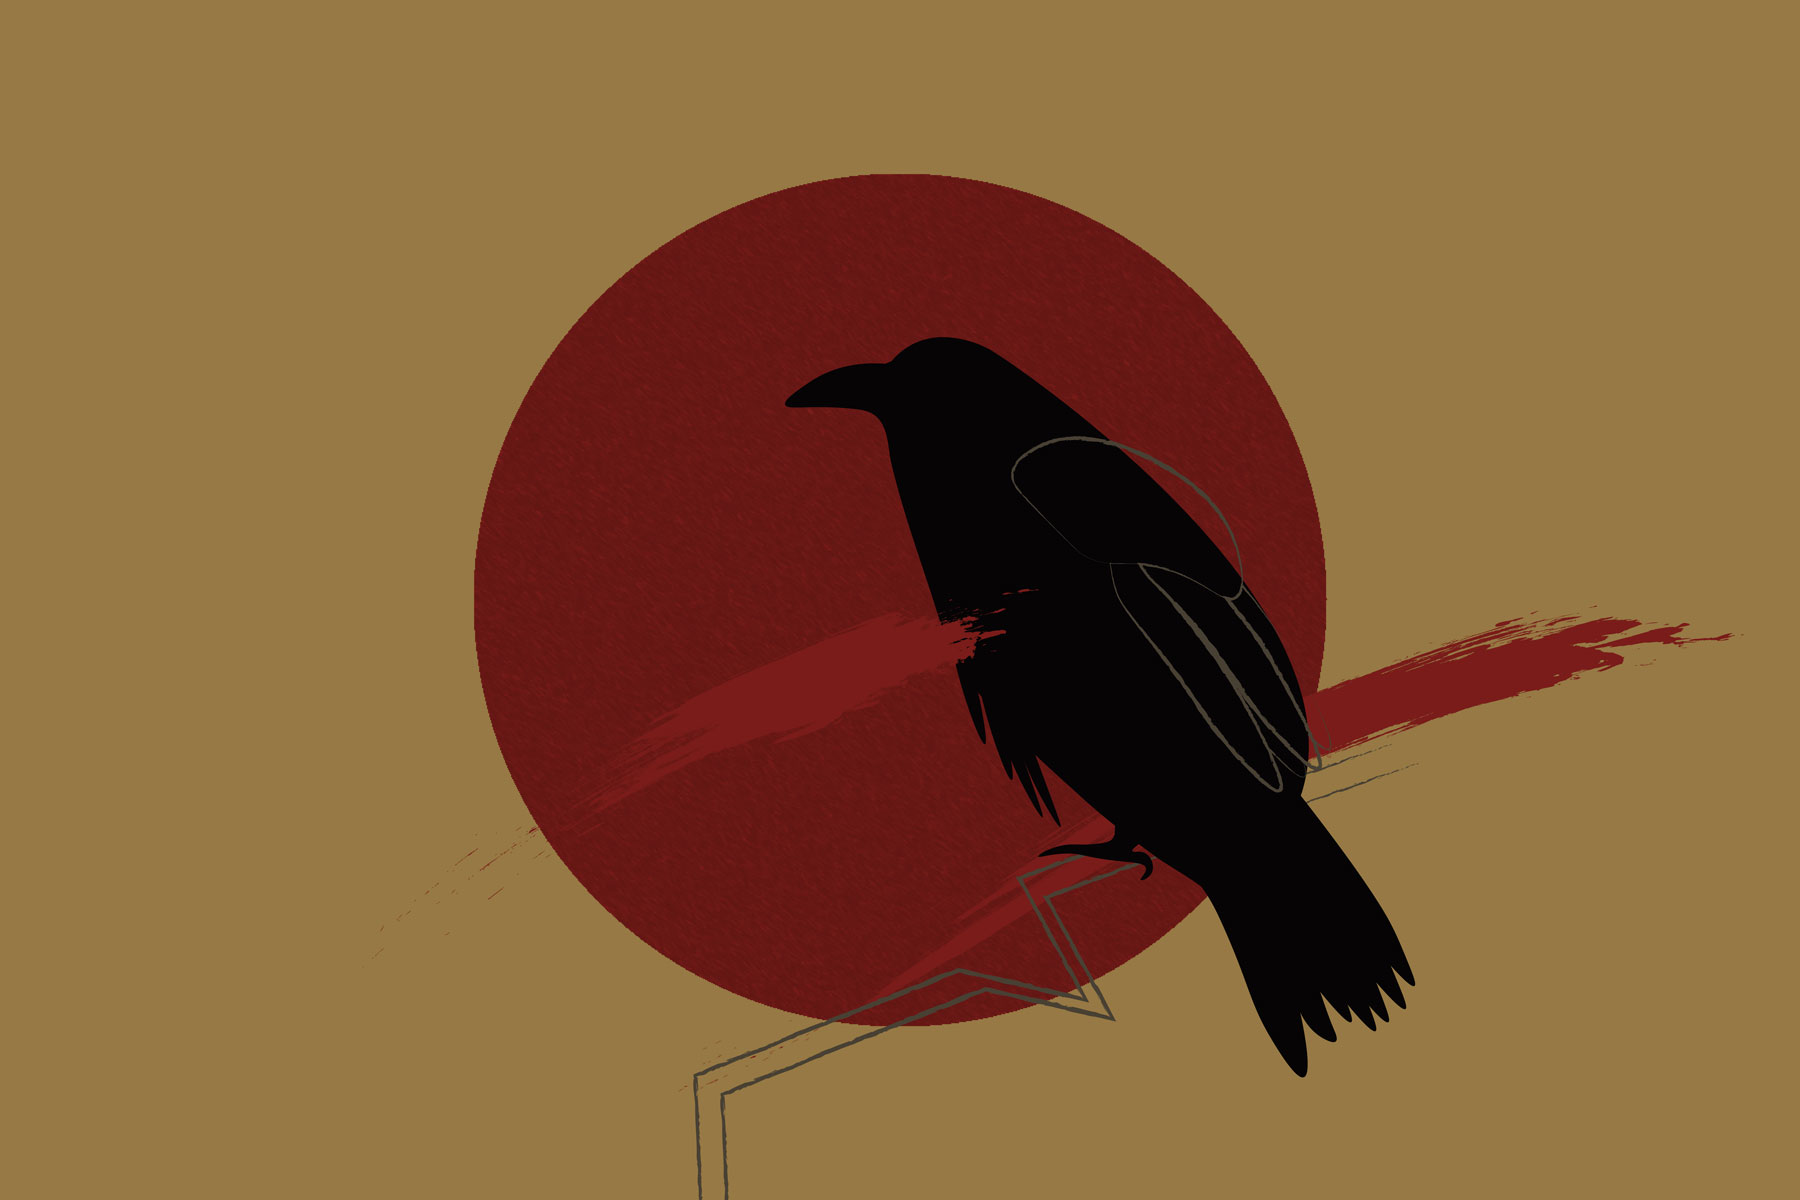 Illustration of crow from Ghost Stories, a Netflix anthology of Indian horror